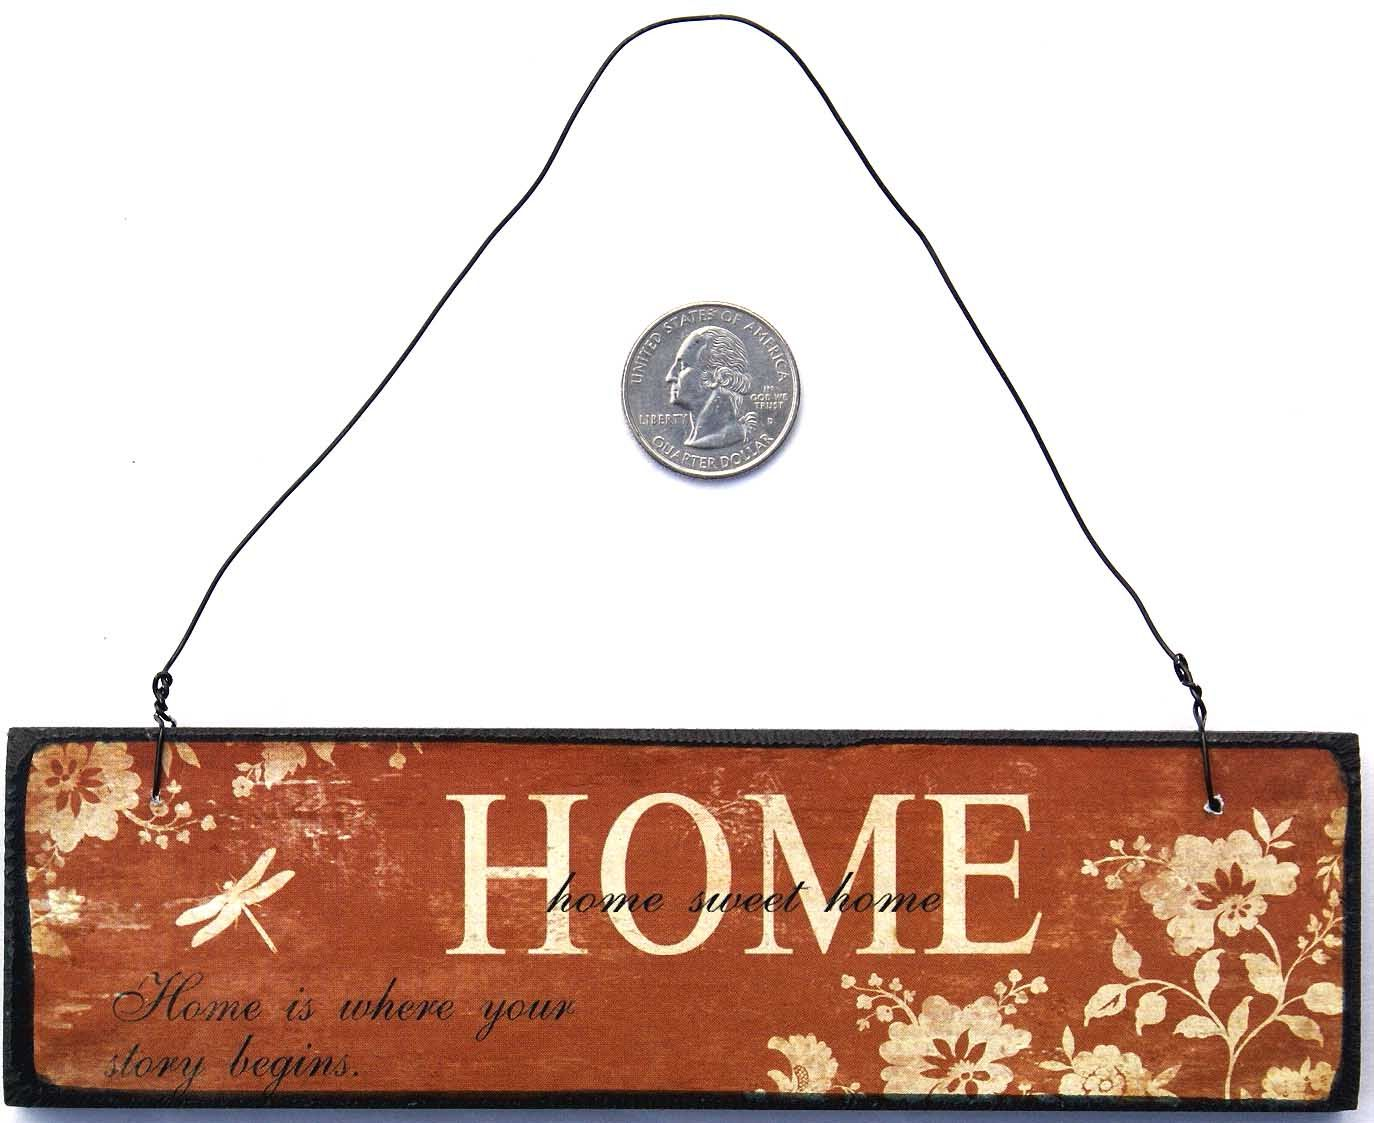 Home Sweet Home Wooden Plaque Sign Ornament Wall Decor Wooden